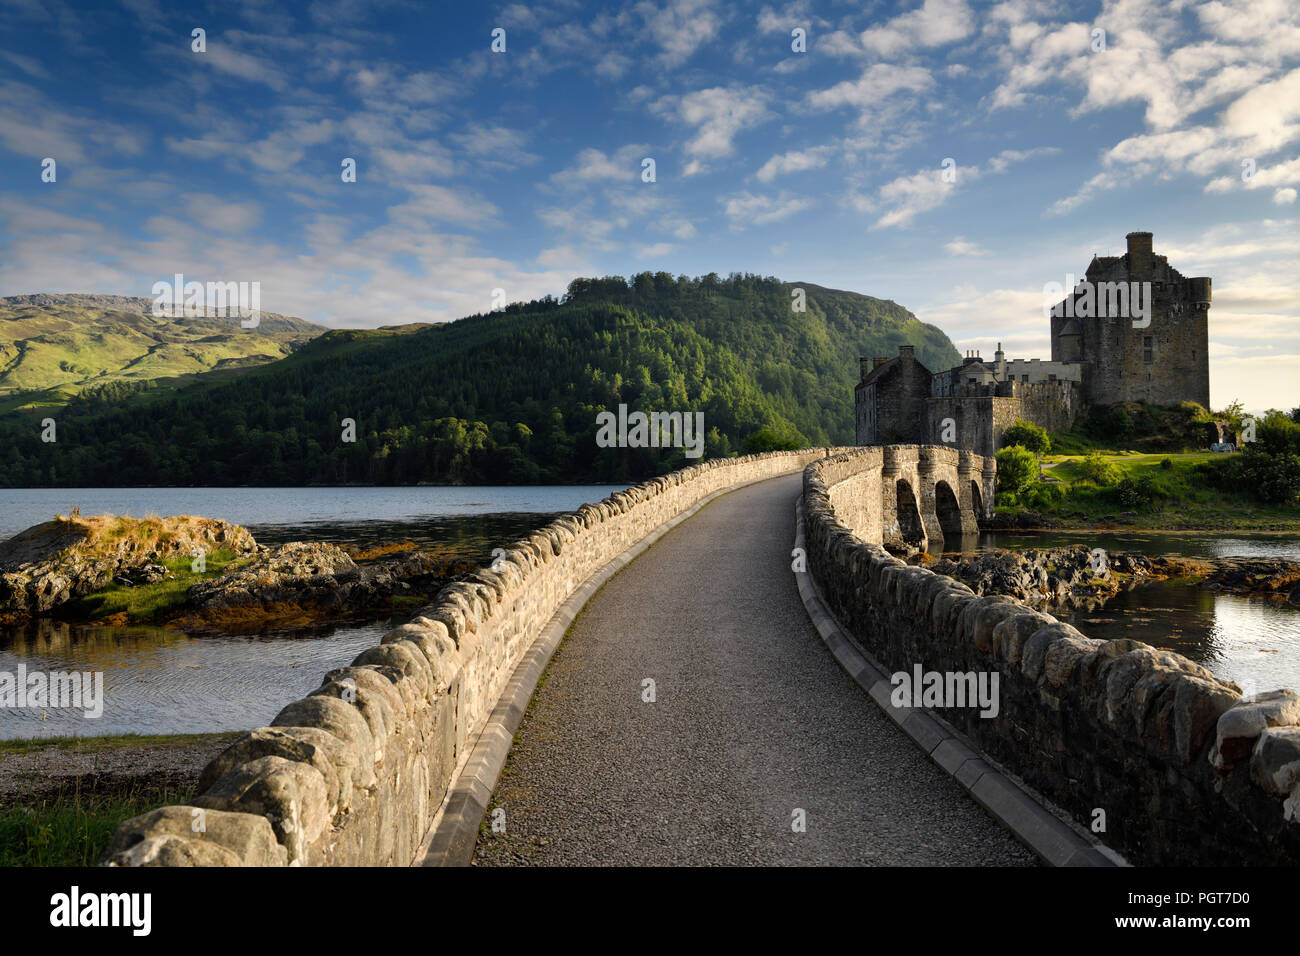 Evening light on new stone arch footbridge to restored Eilean Donan Castle on Island at three lochs in Scottish Highlands Scotland UK - Stock Image